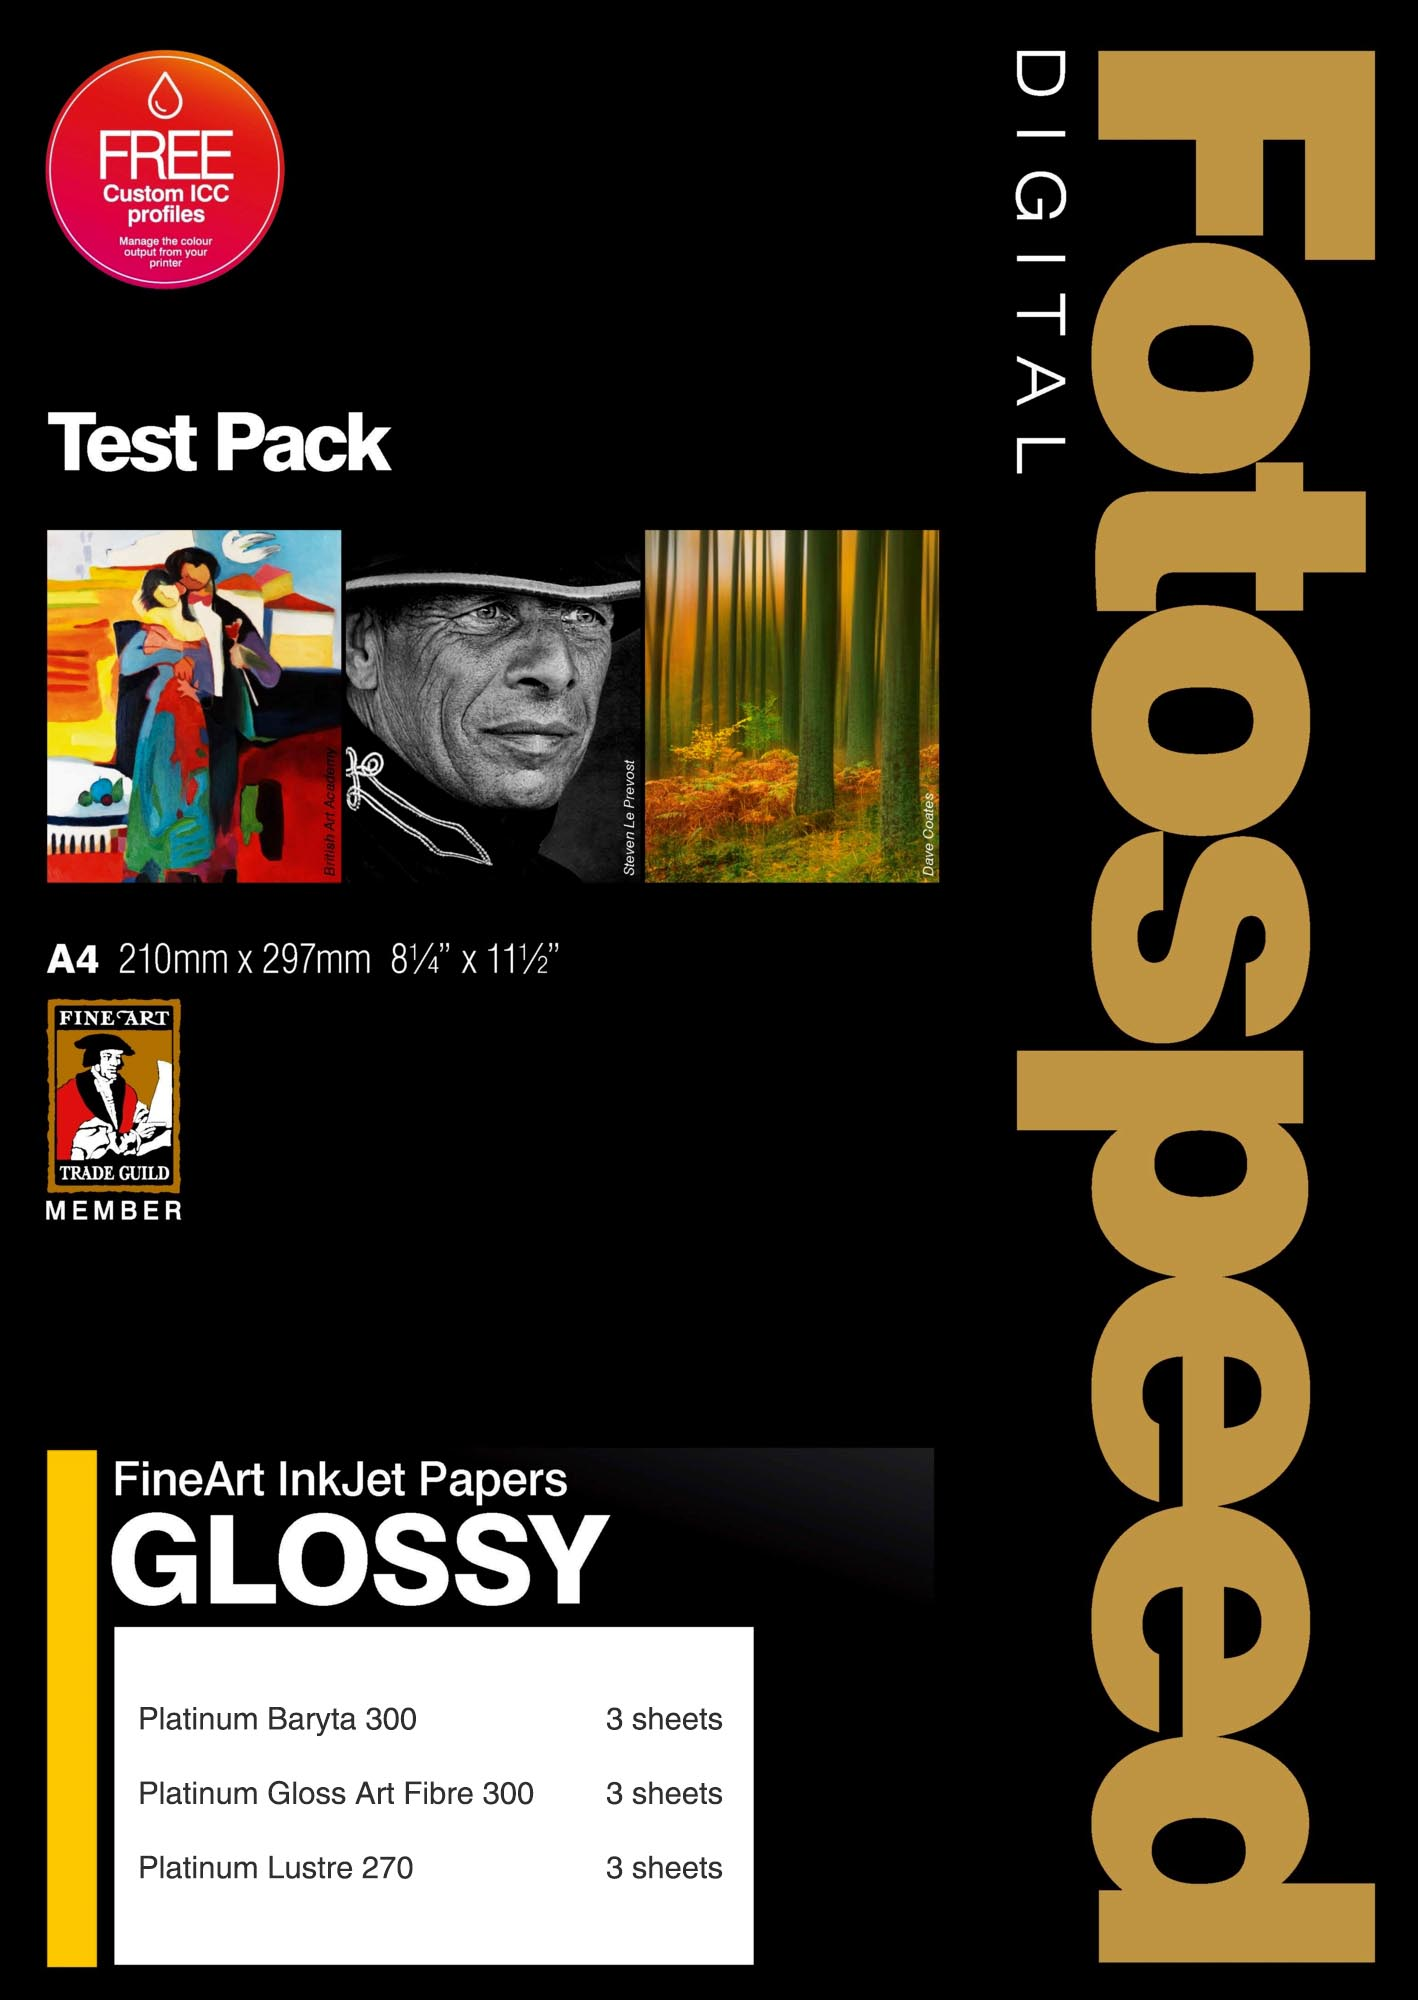 Fotospeed Digital Fine Art Inkjet Paper GLOSSY Test Pack - 12 Sheets A4